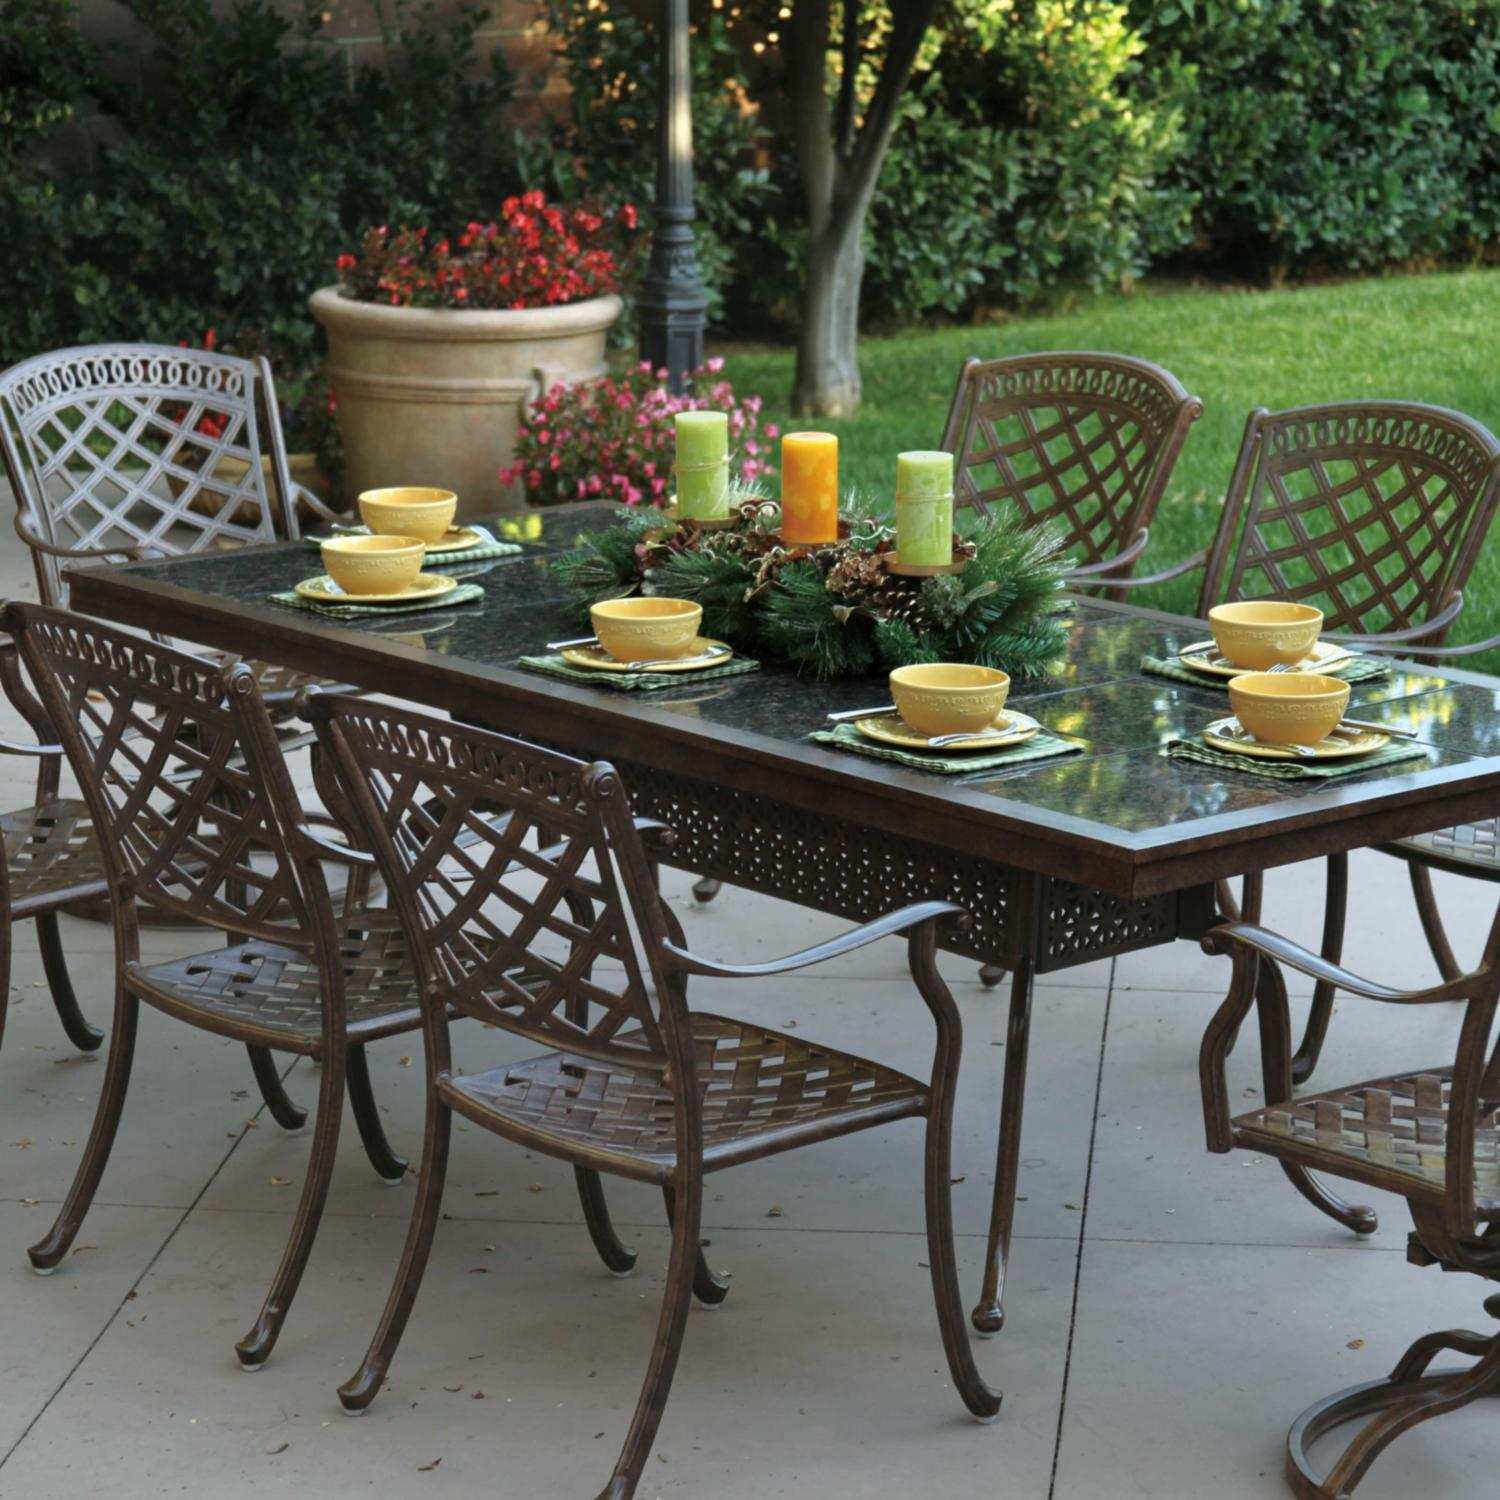 Darlee Sedona 8-person Cast Aluminum Patio Dining Set With Granite Top Table - Mocha / Brown Granite Tile at Sears.com